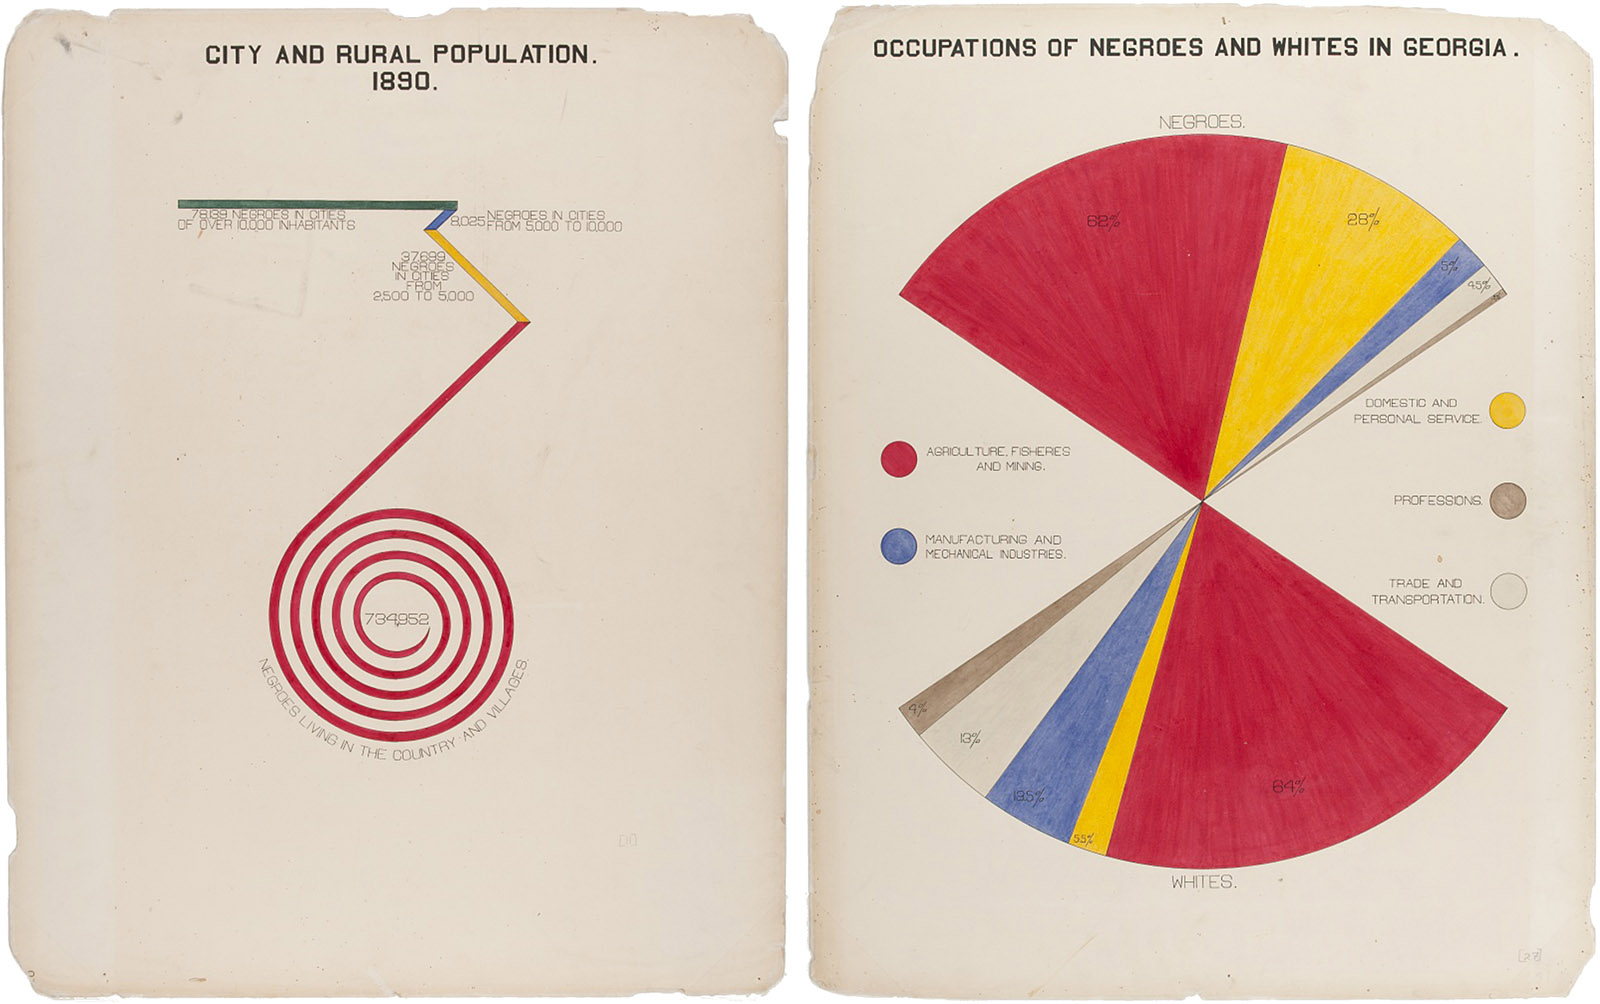 Visualizations by W.E.B. Du Bois from the 'American Negro Exhibit' at the Paris Exposition, 1900